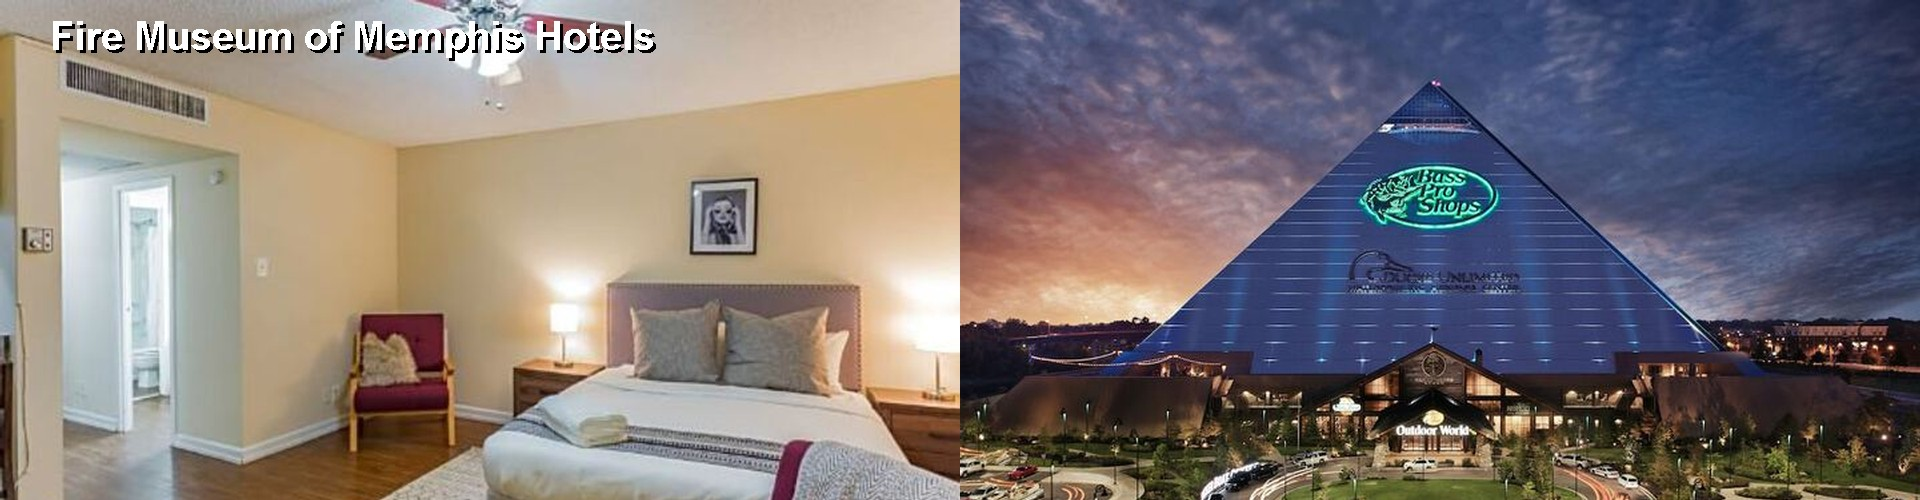 5 Best Hotels near Fire Museum of Memphis